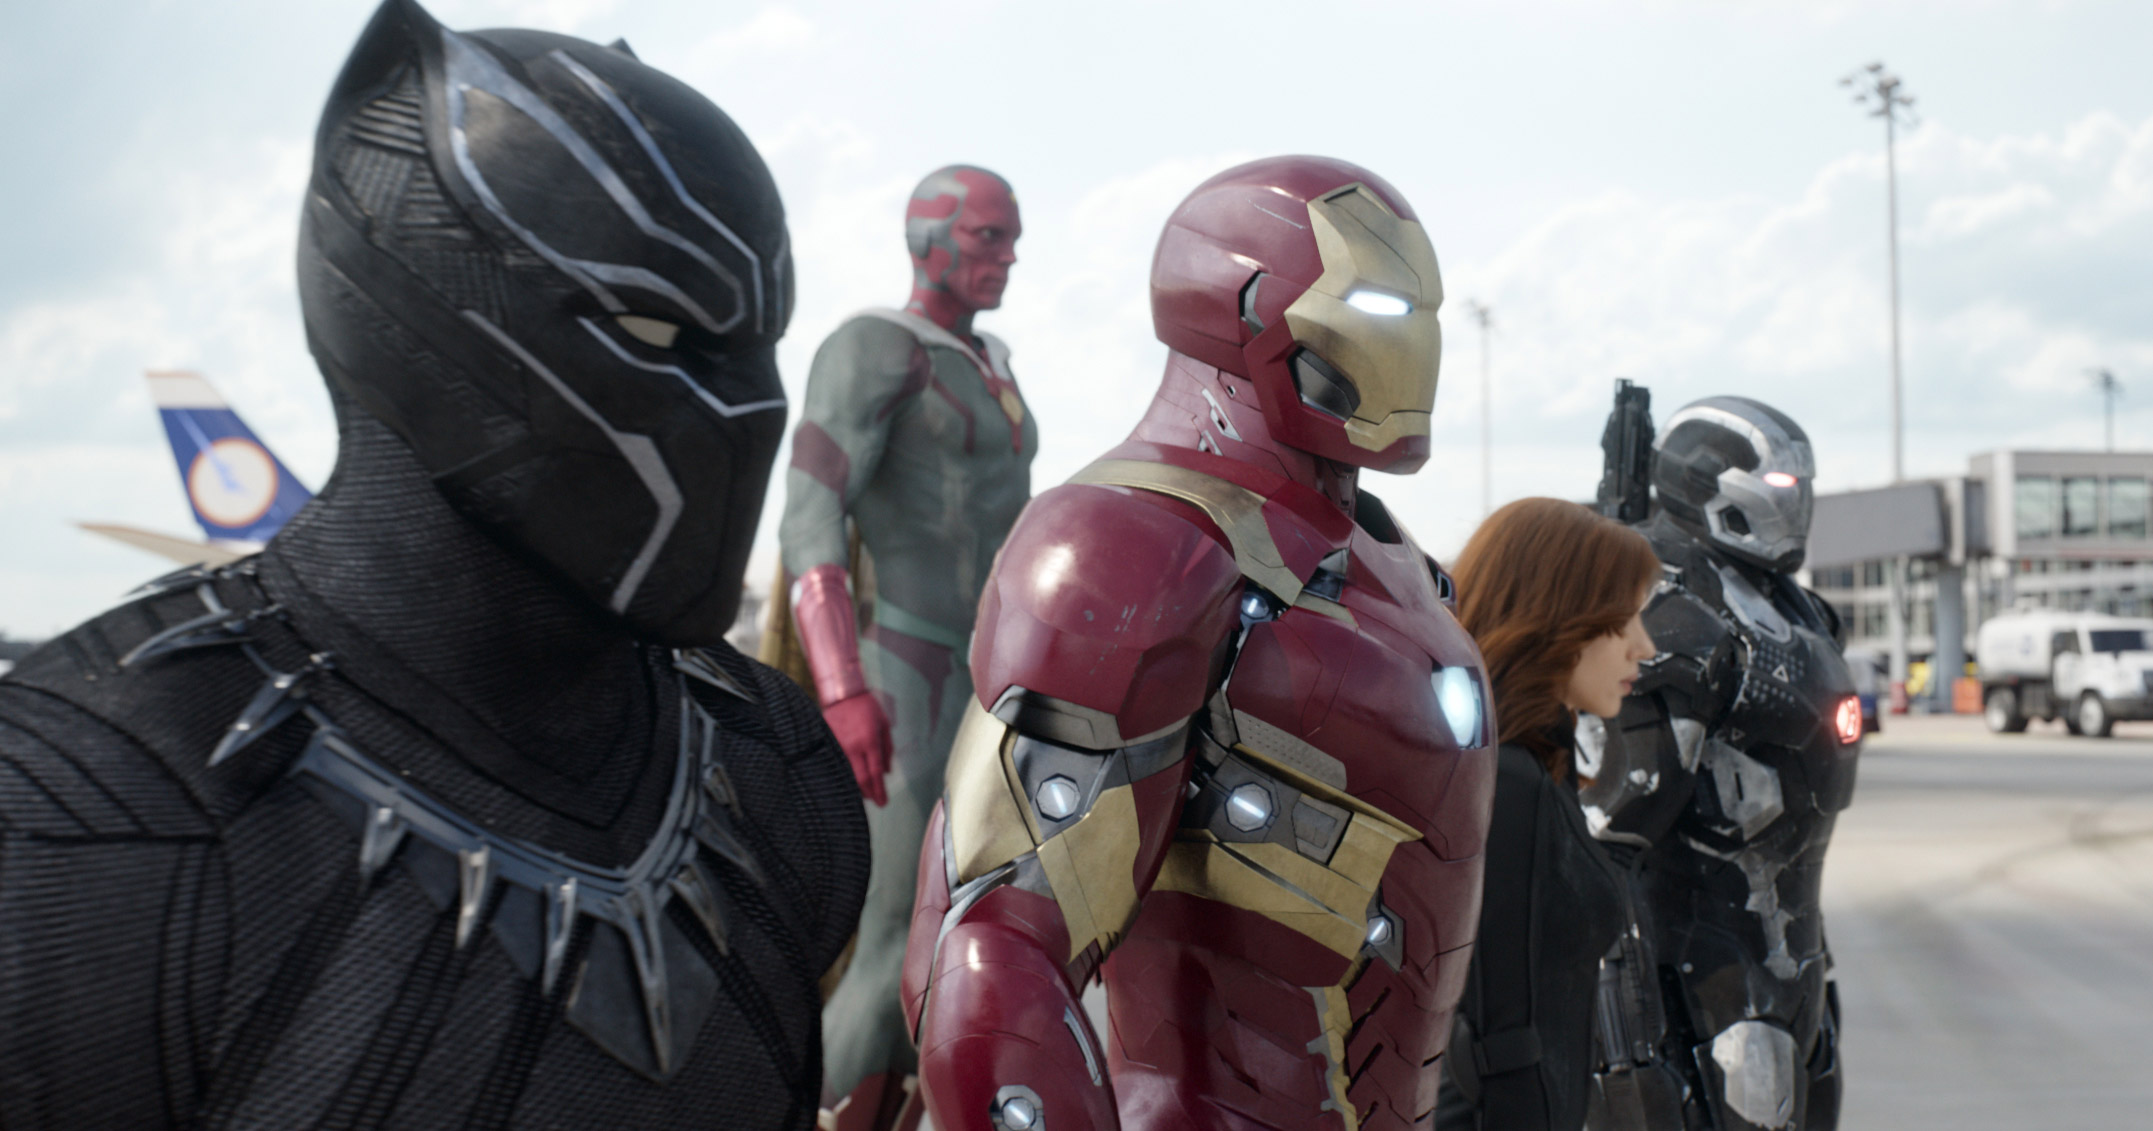 Chadwick Boseman, from left, as Panther, Paul Bettany as Vision, Robert Downey Jr. as Iron Man, Scarlett Johansson as Natasha Romanoff, and Don Cheadle as War Machine in a scene from  Marvel's Captain America: Civil War.